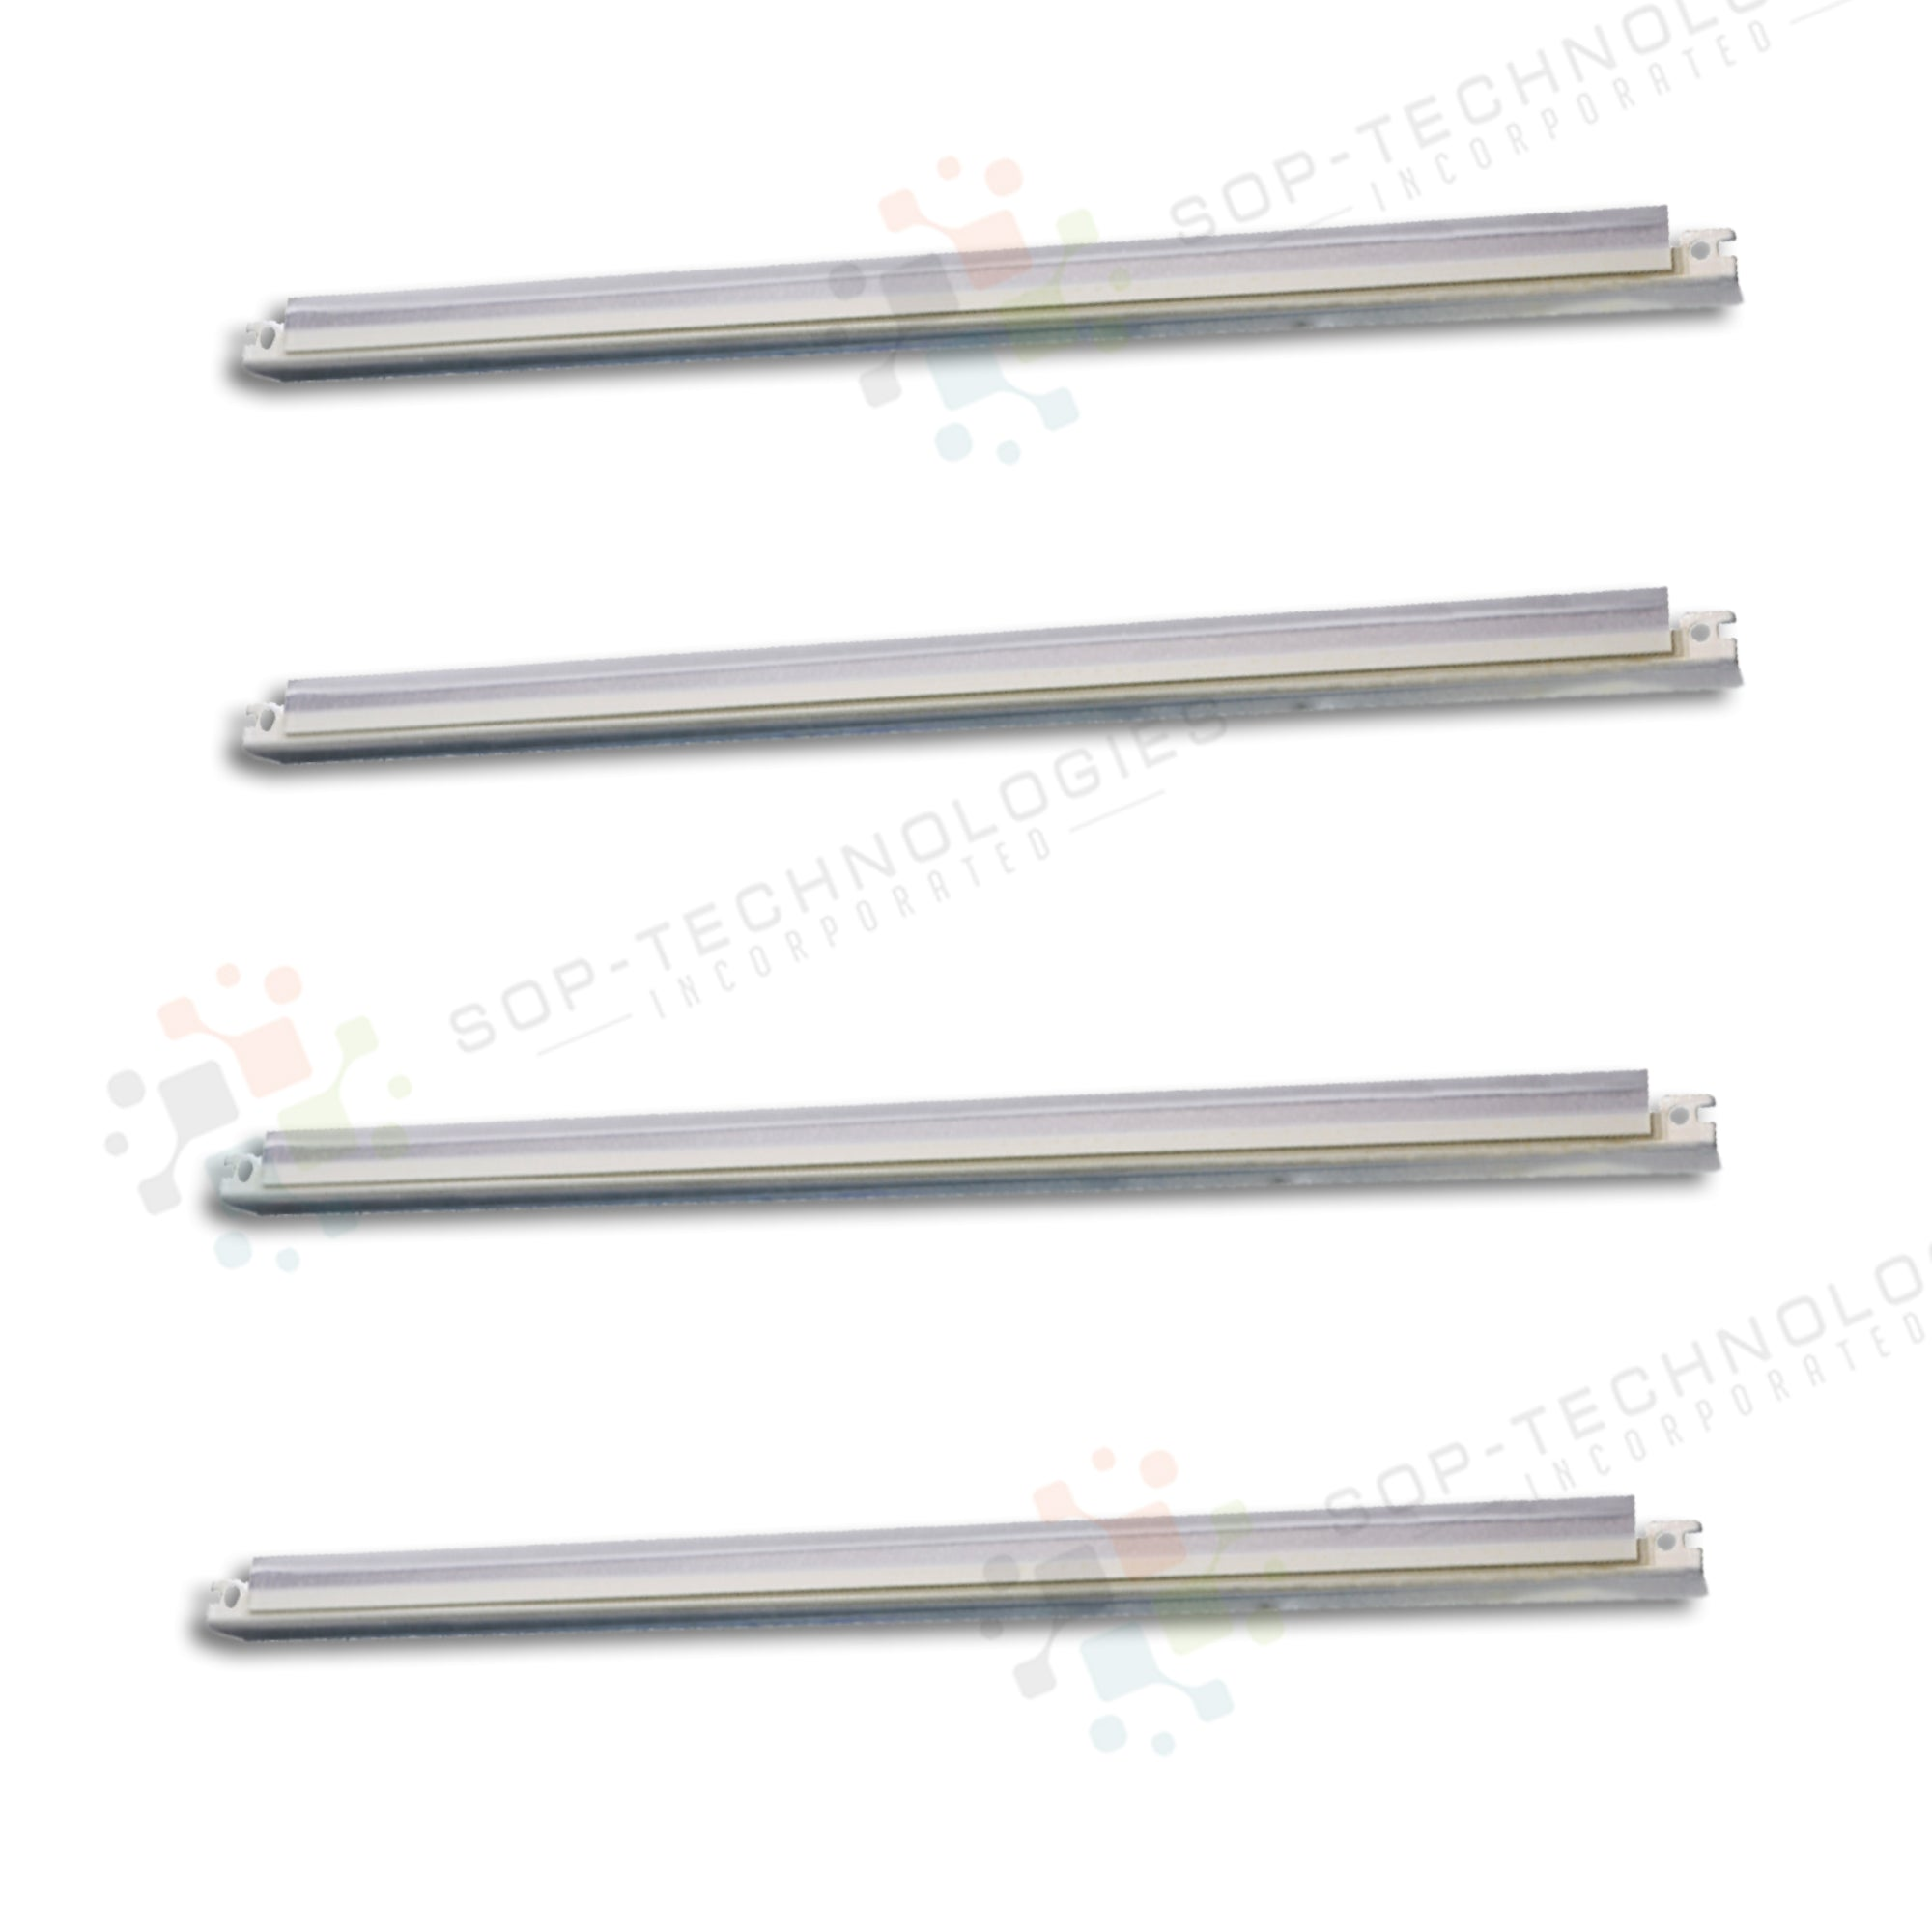 4 Drum Blades for Xerox DC4110 1100 4112 4595 4127 7000 d95 D95 D110 D125 USA - SOP-TECHNOLOGIES, INC.